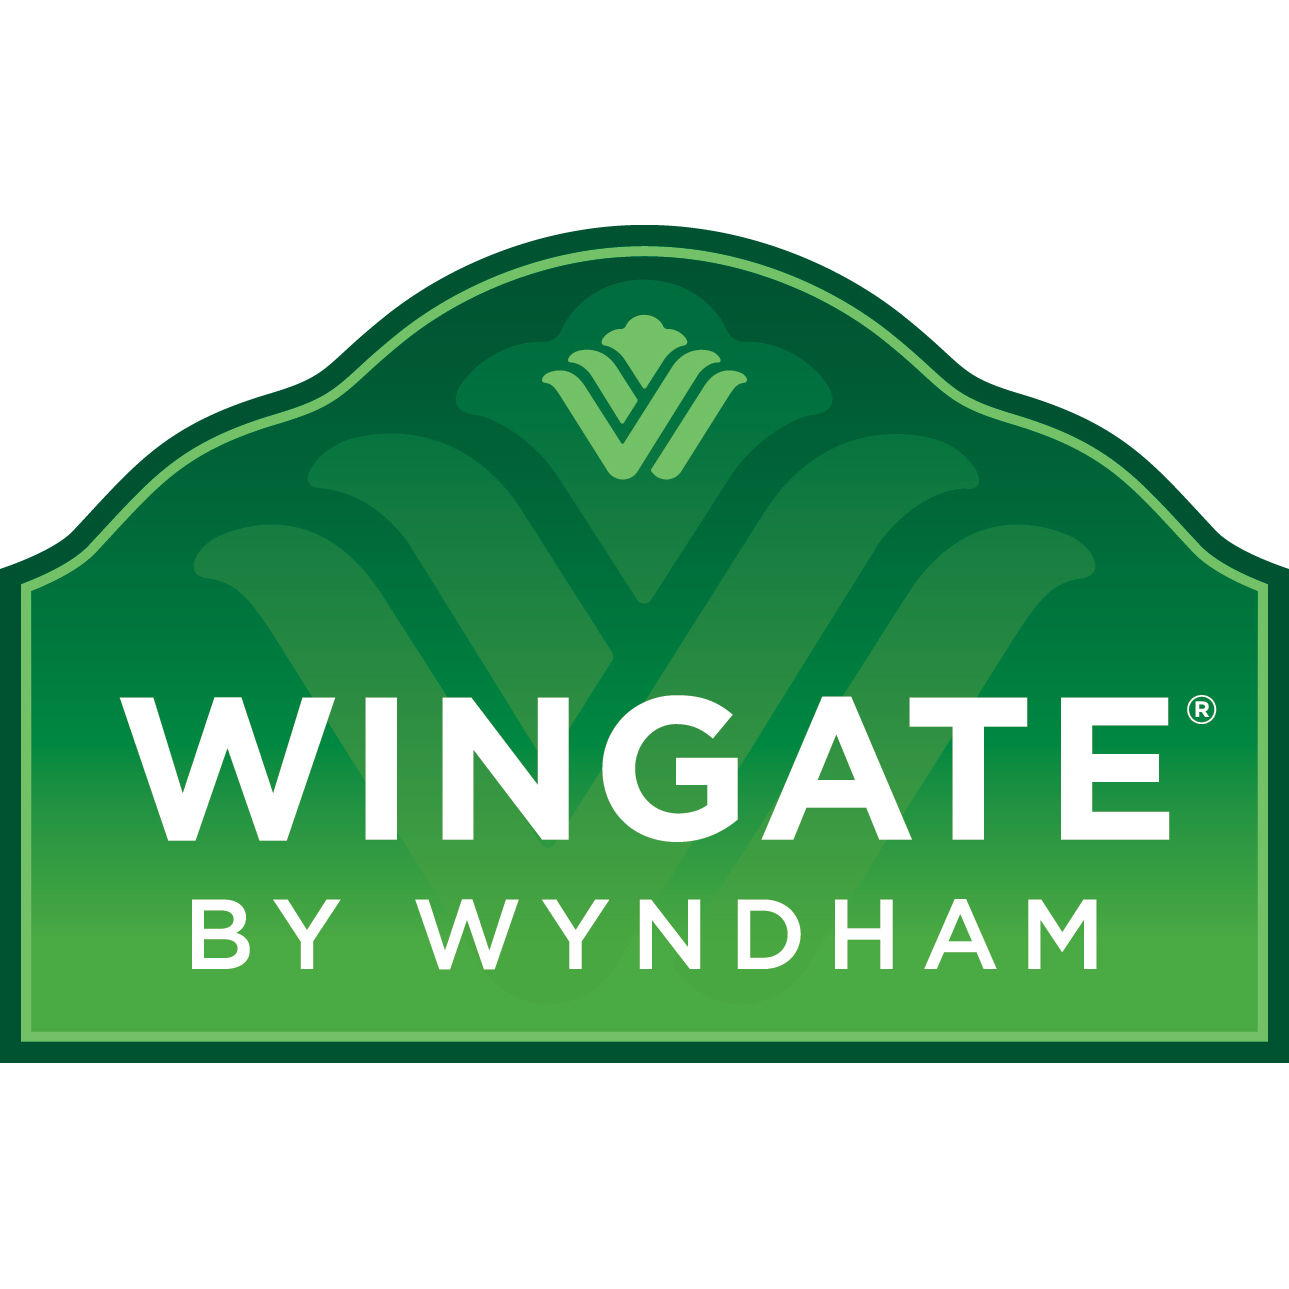 Wingate by wyndham north little rock 4801 west commercial for The wingate